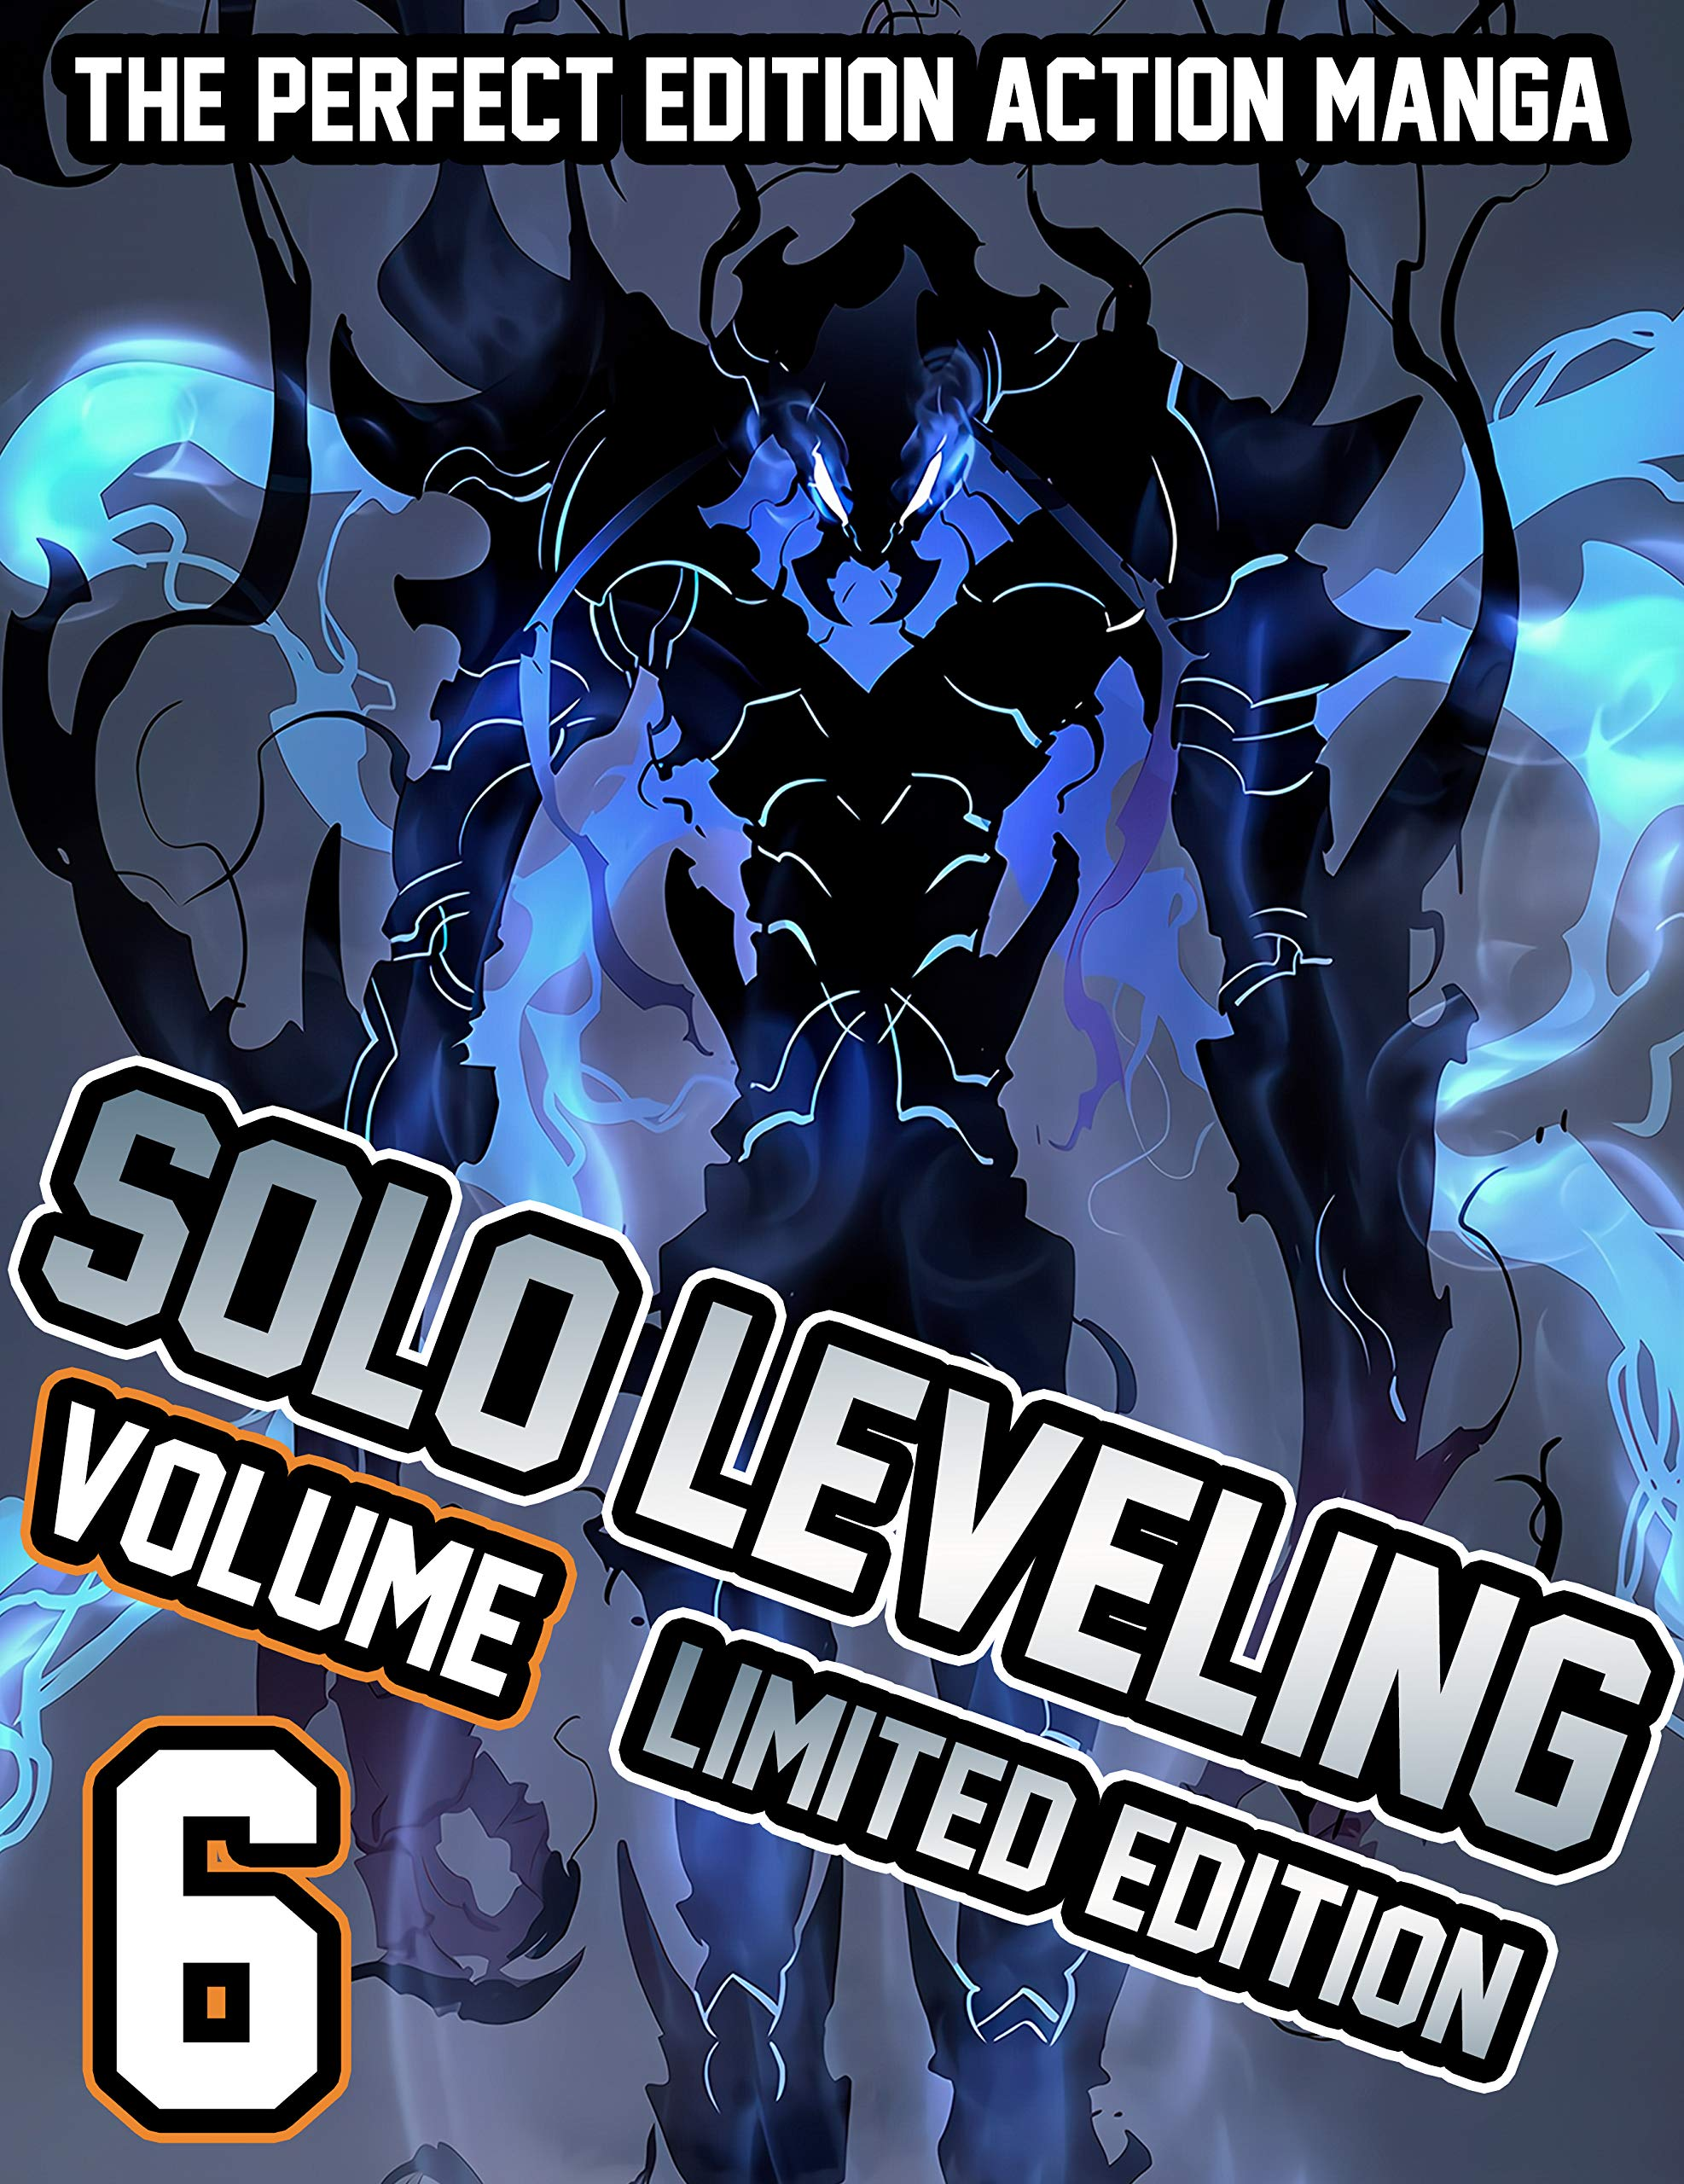 The Perfect Edition Action Manga Solo Leveling Limited Edition: Complete Edition Solo Leveling Vol.6